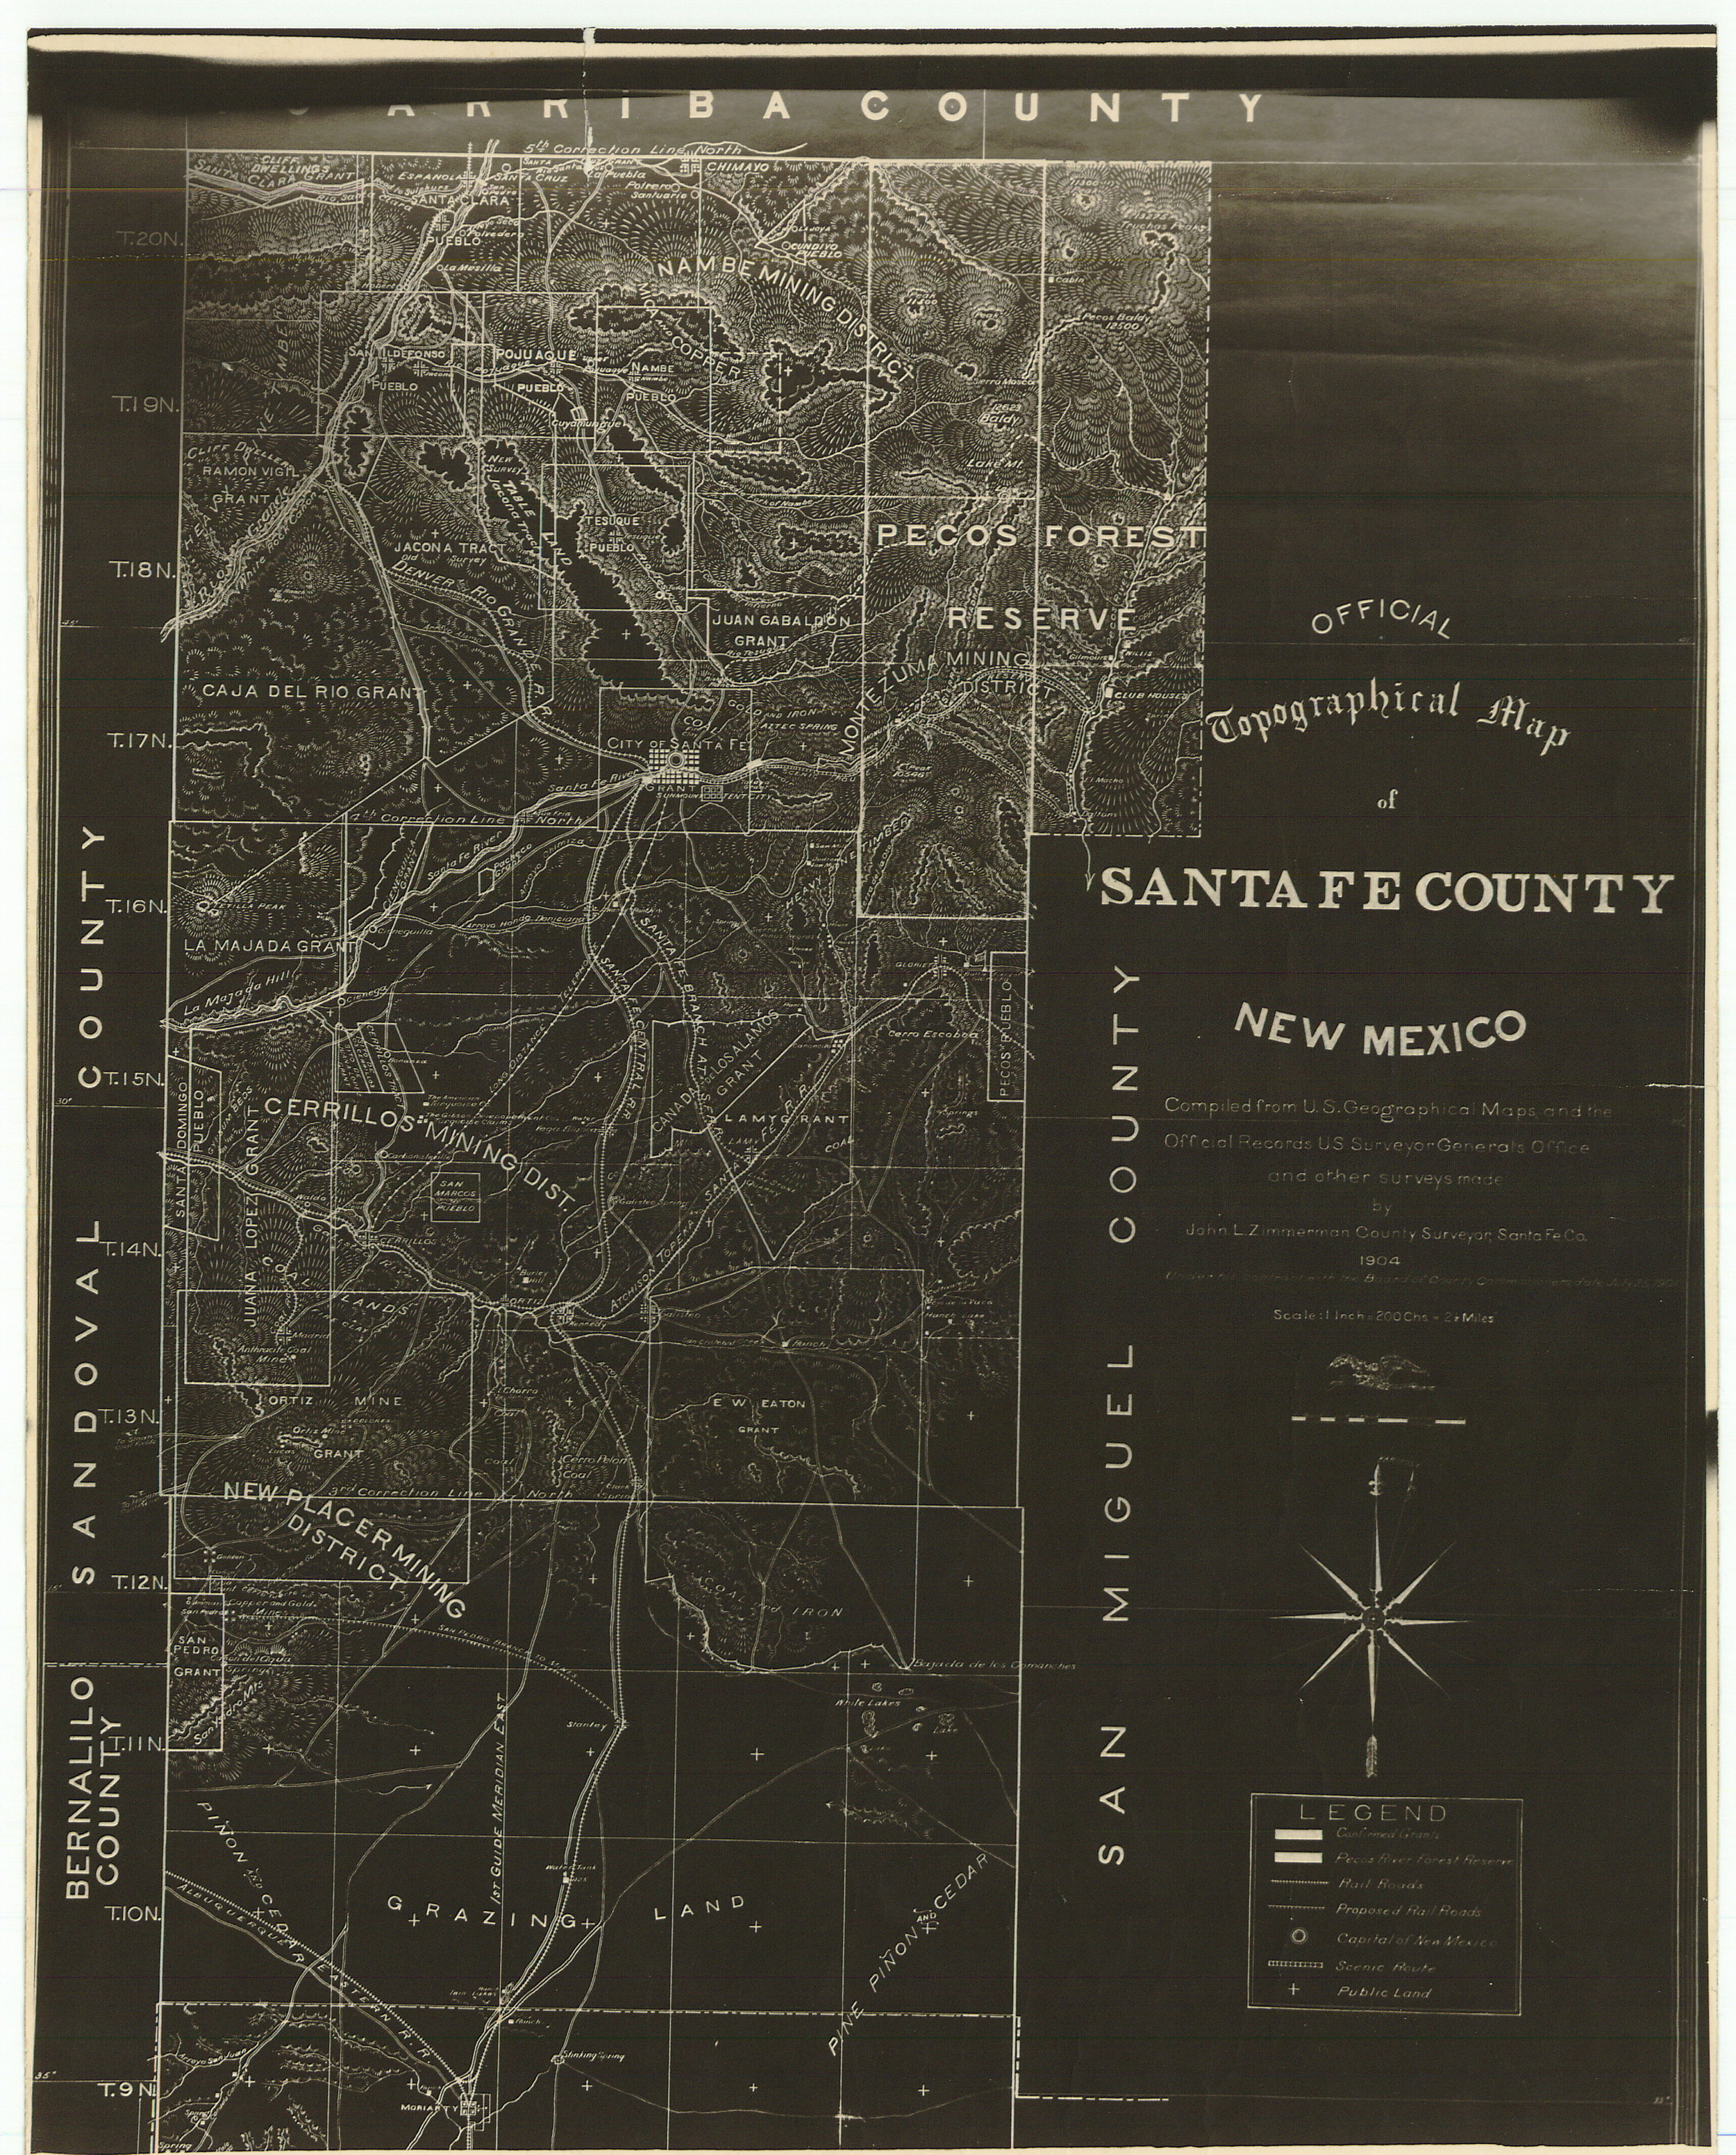 1904 Official Topographical Map of Santa Fe, New Mexico by John L. Zimmerman, County Surveyor. Shows mining districts, railroads and some grants in the county.